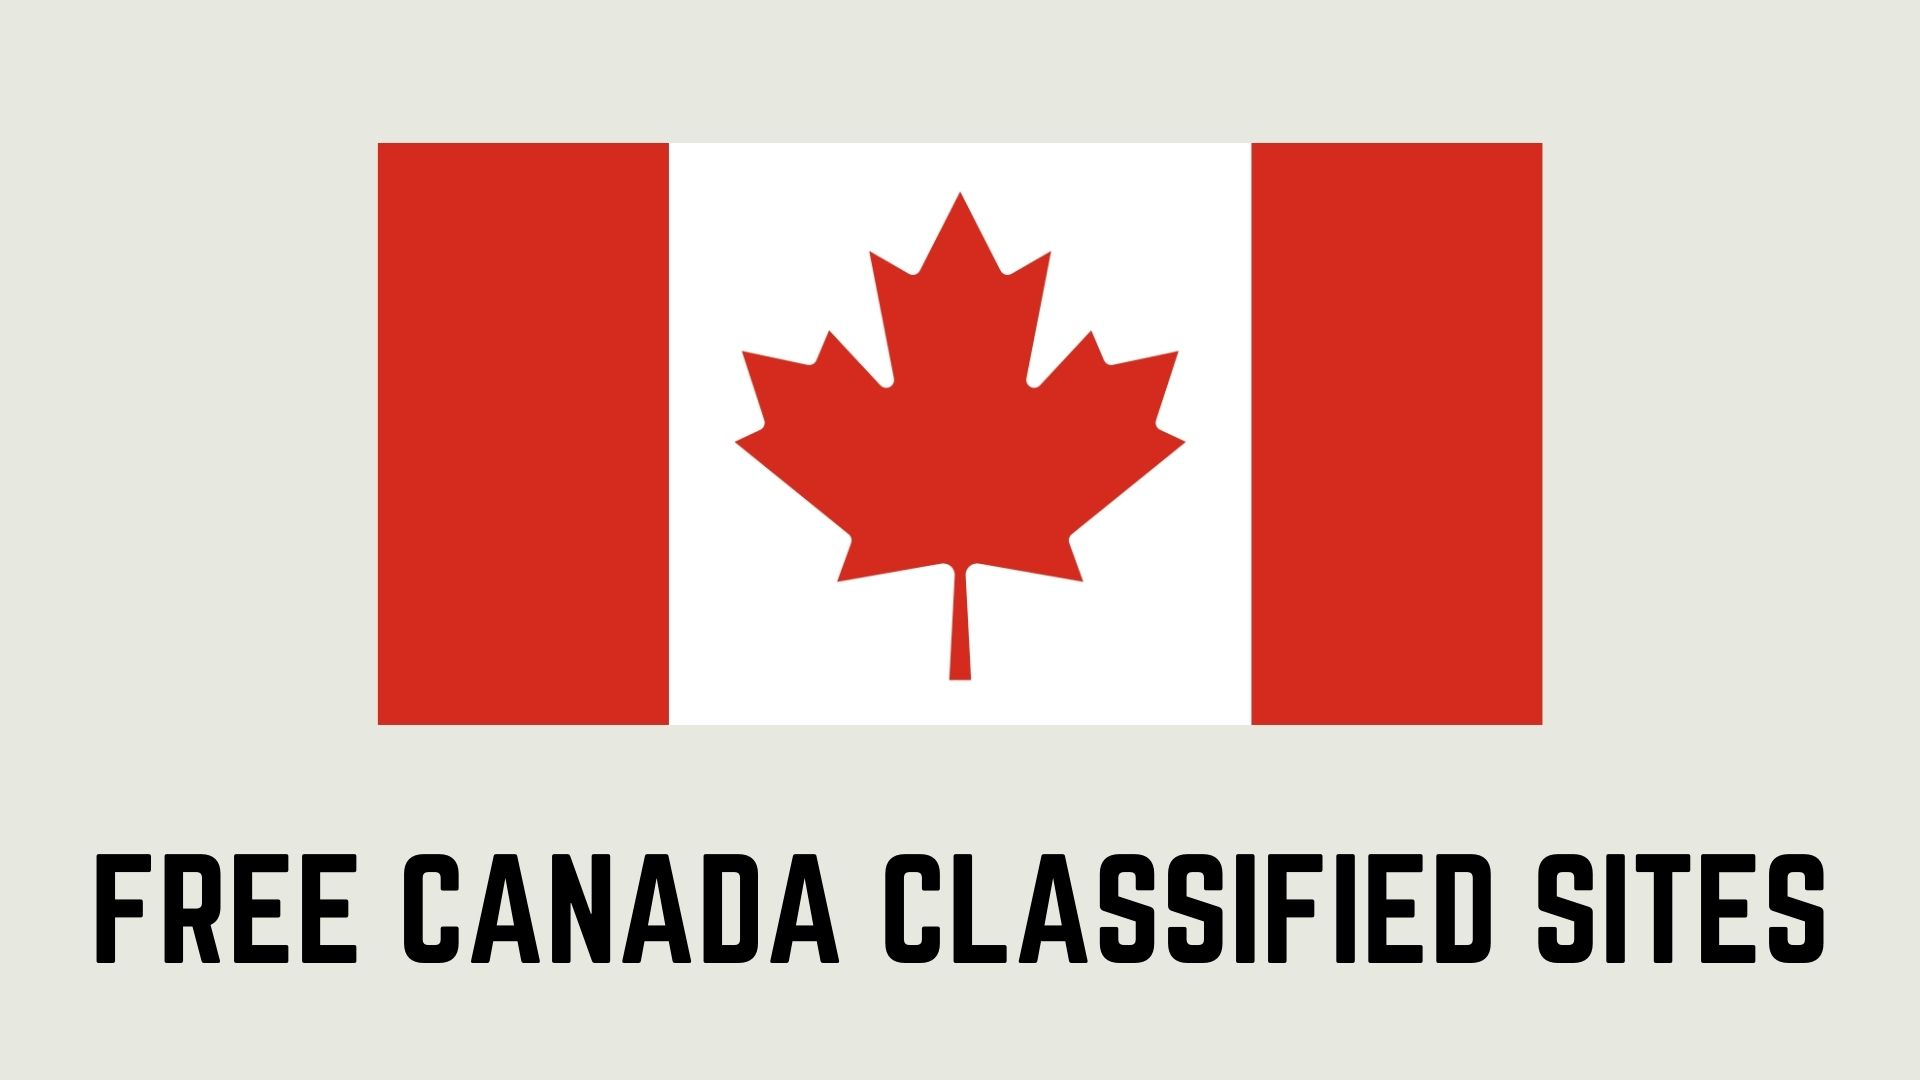 Free Canada Classified Sites